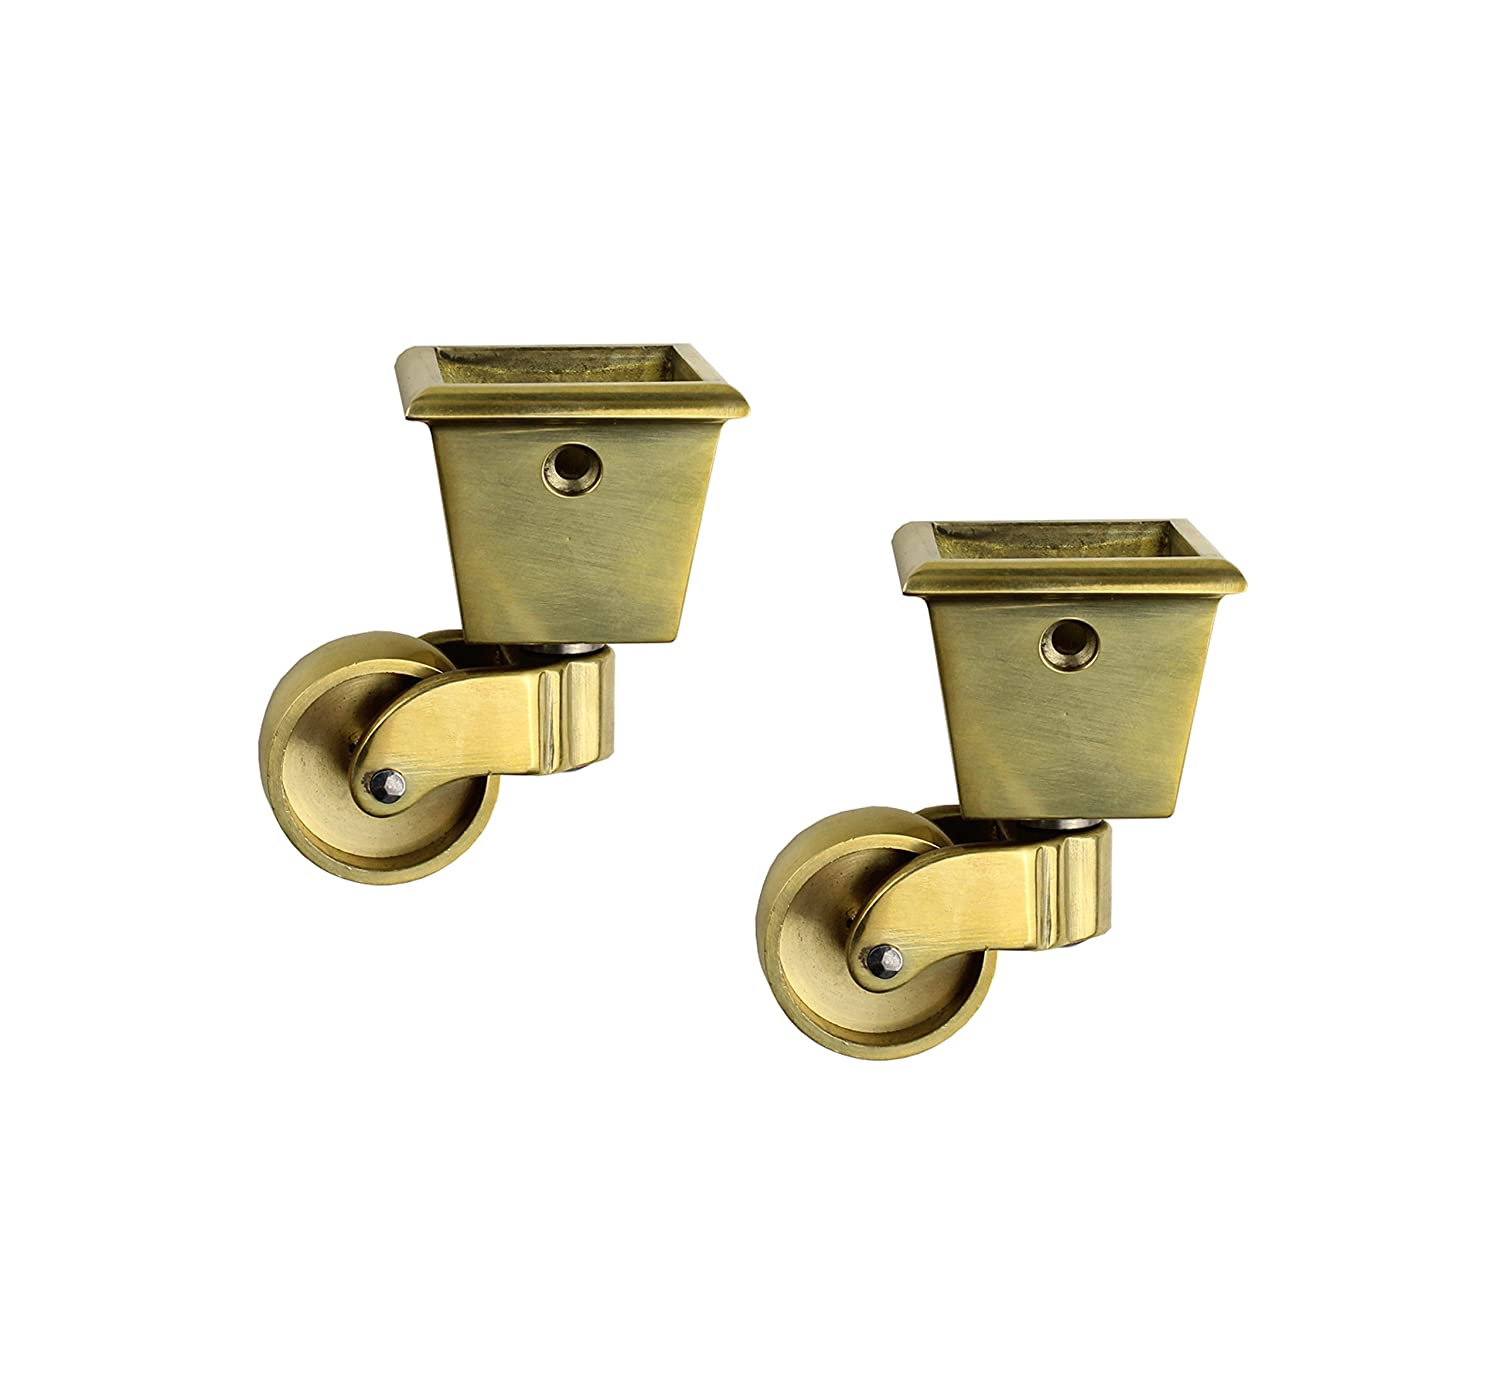 Ordinaire RZDEAL 2PCS Universal Caster 360 Degree Rotation Square Cup Brass Heavy  Wheel Hardware Movable For Trunk Box Furniture Cabinet Sofa Trolley Chairs  Bed: ...